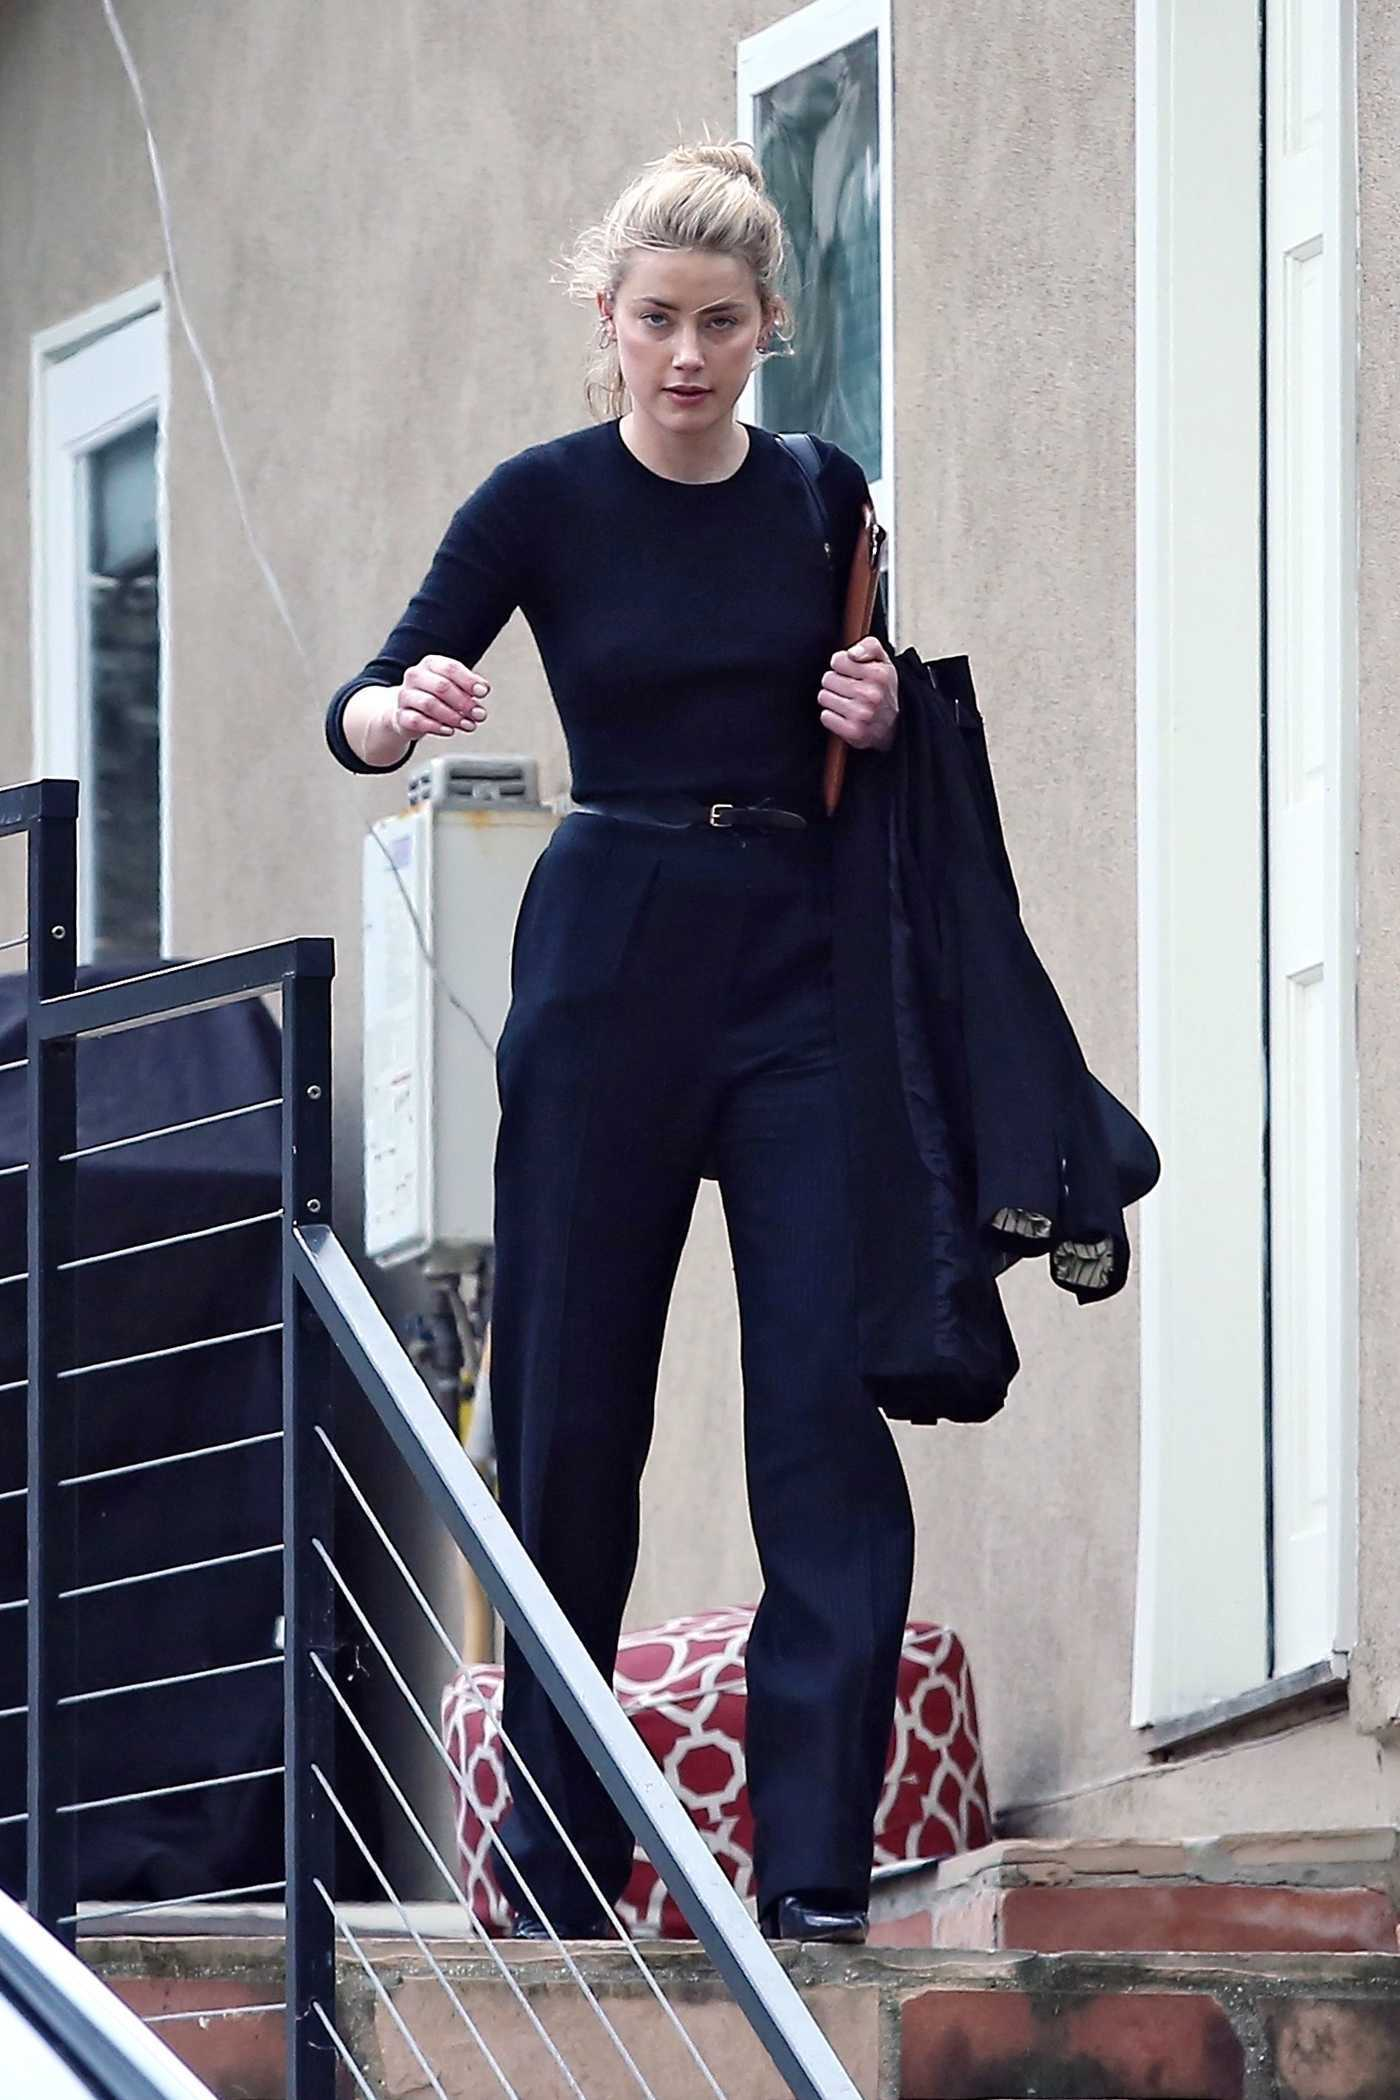 Amber Heard in a Black Sweatshirt Attends a Business Meeting in LA 03/21/2019